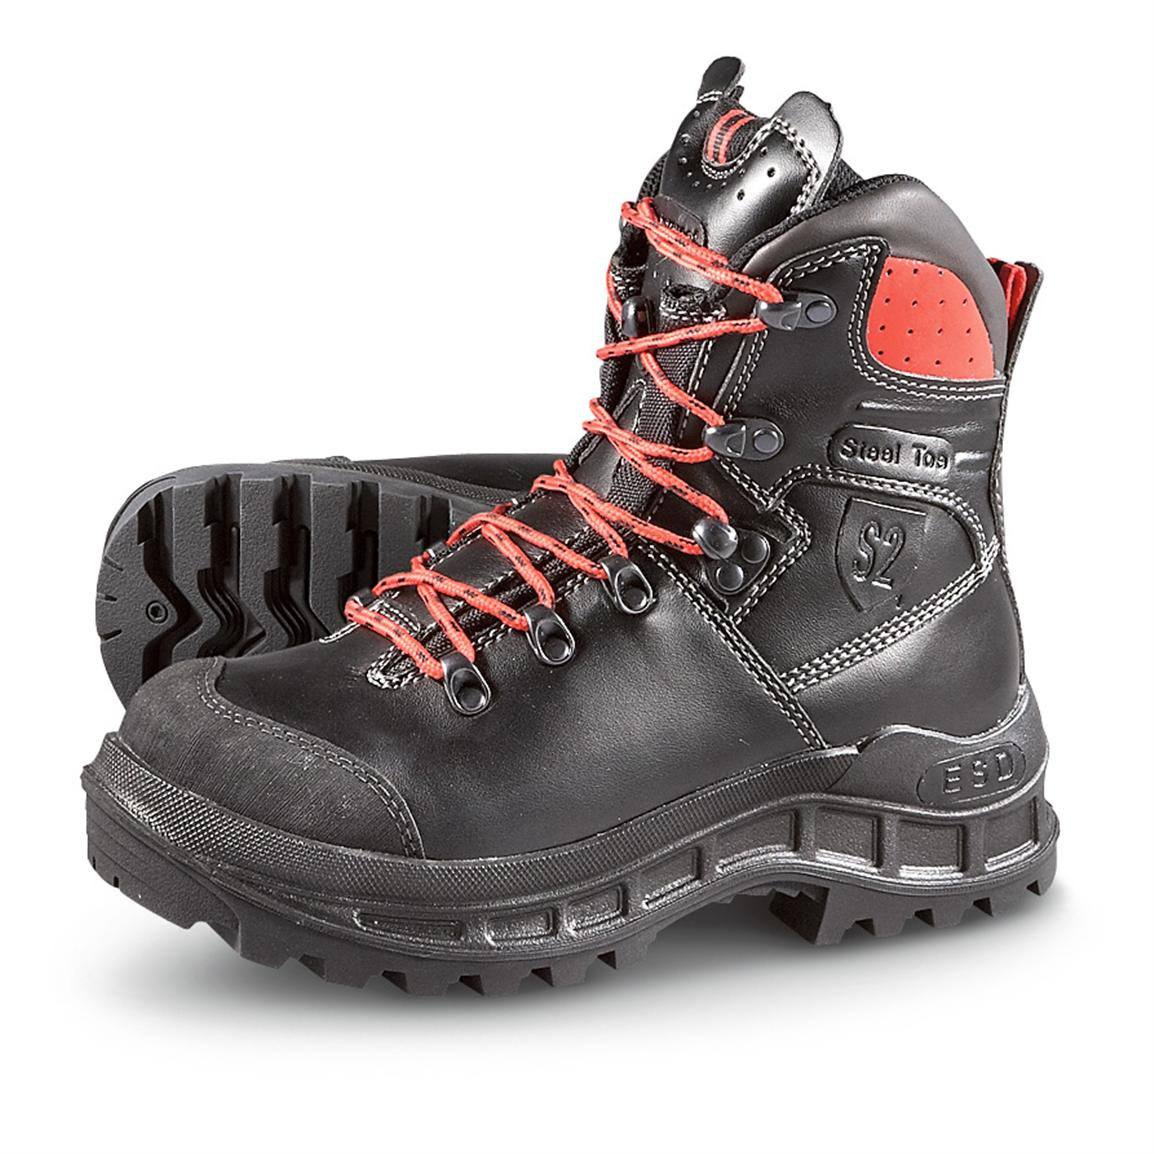 Men's S2 Forrester Waterproof Steel Toe Boots, Black - 281597 ...